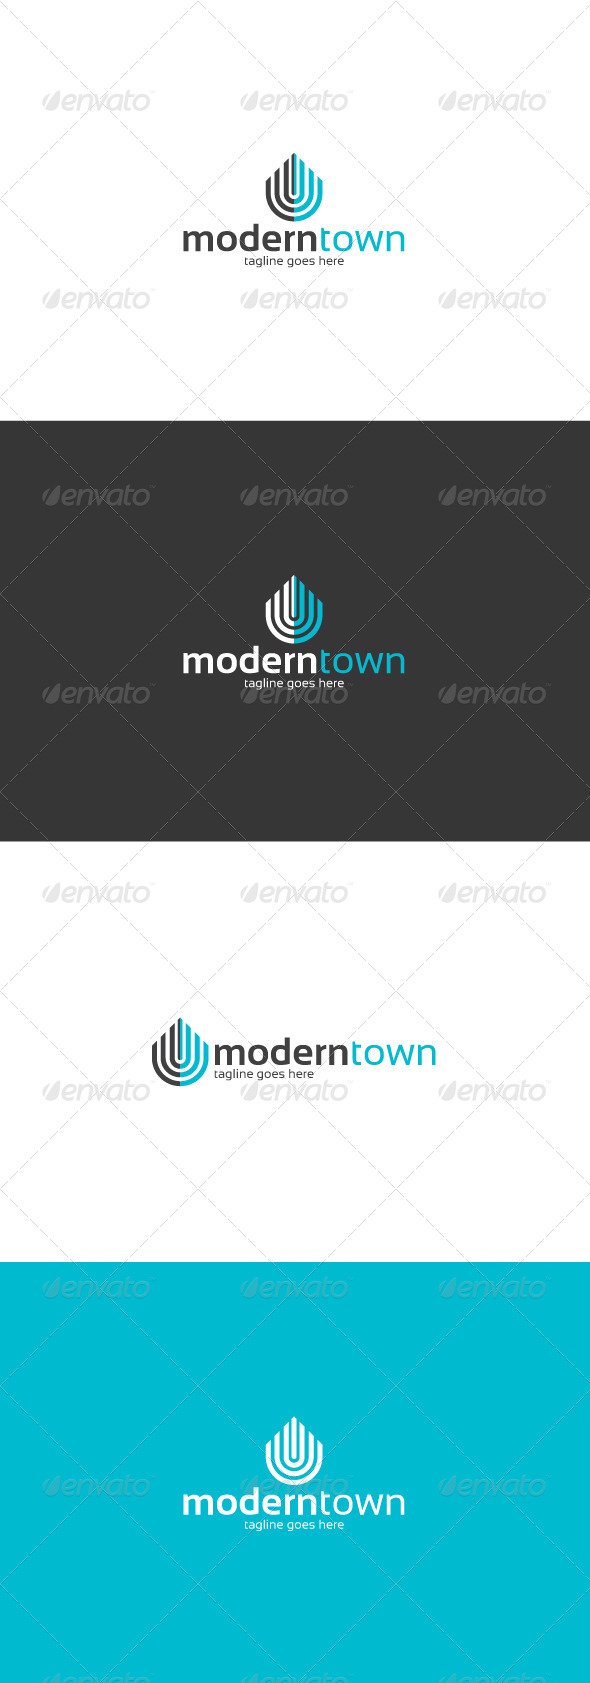 GraphicRiver Modern Town Logo 8644380